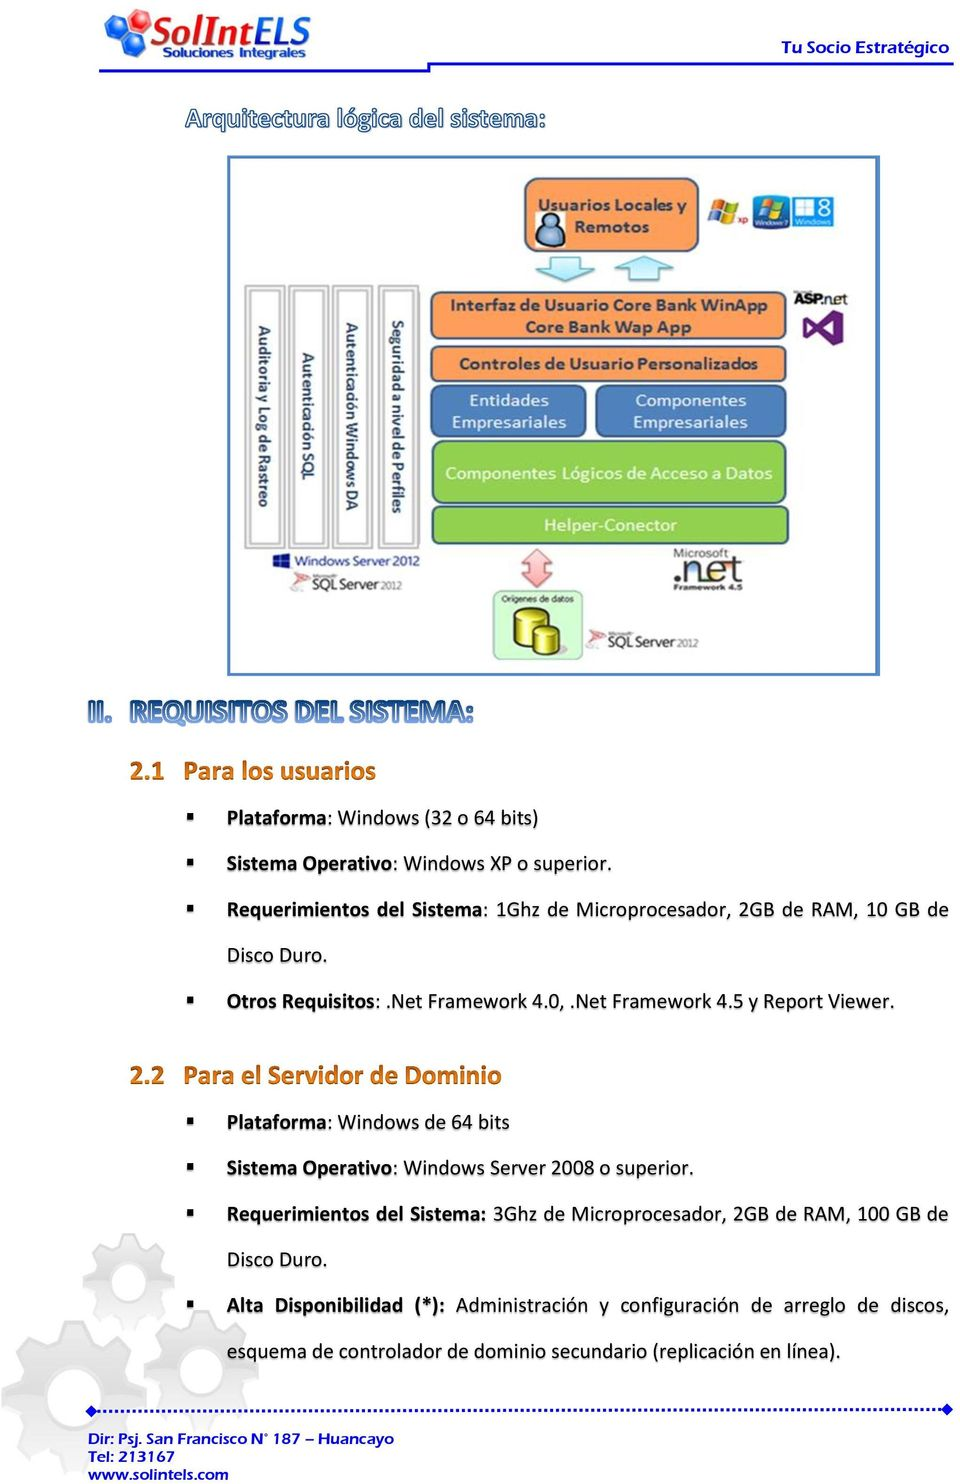 Net Framework 4.5 y Report Viewer. Plataforma: Windows de 64 bits Sistema Operativo: Windows Server 2008 o superior.